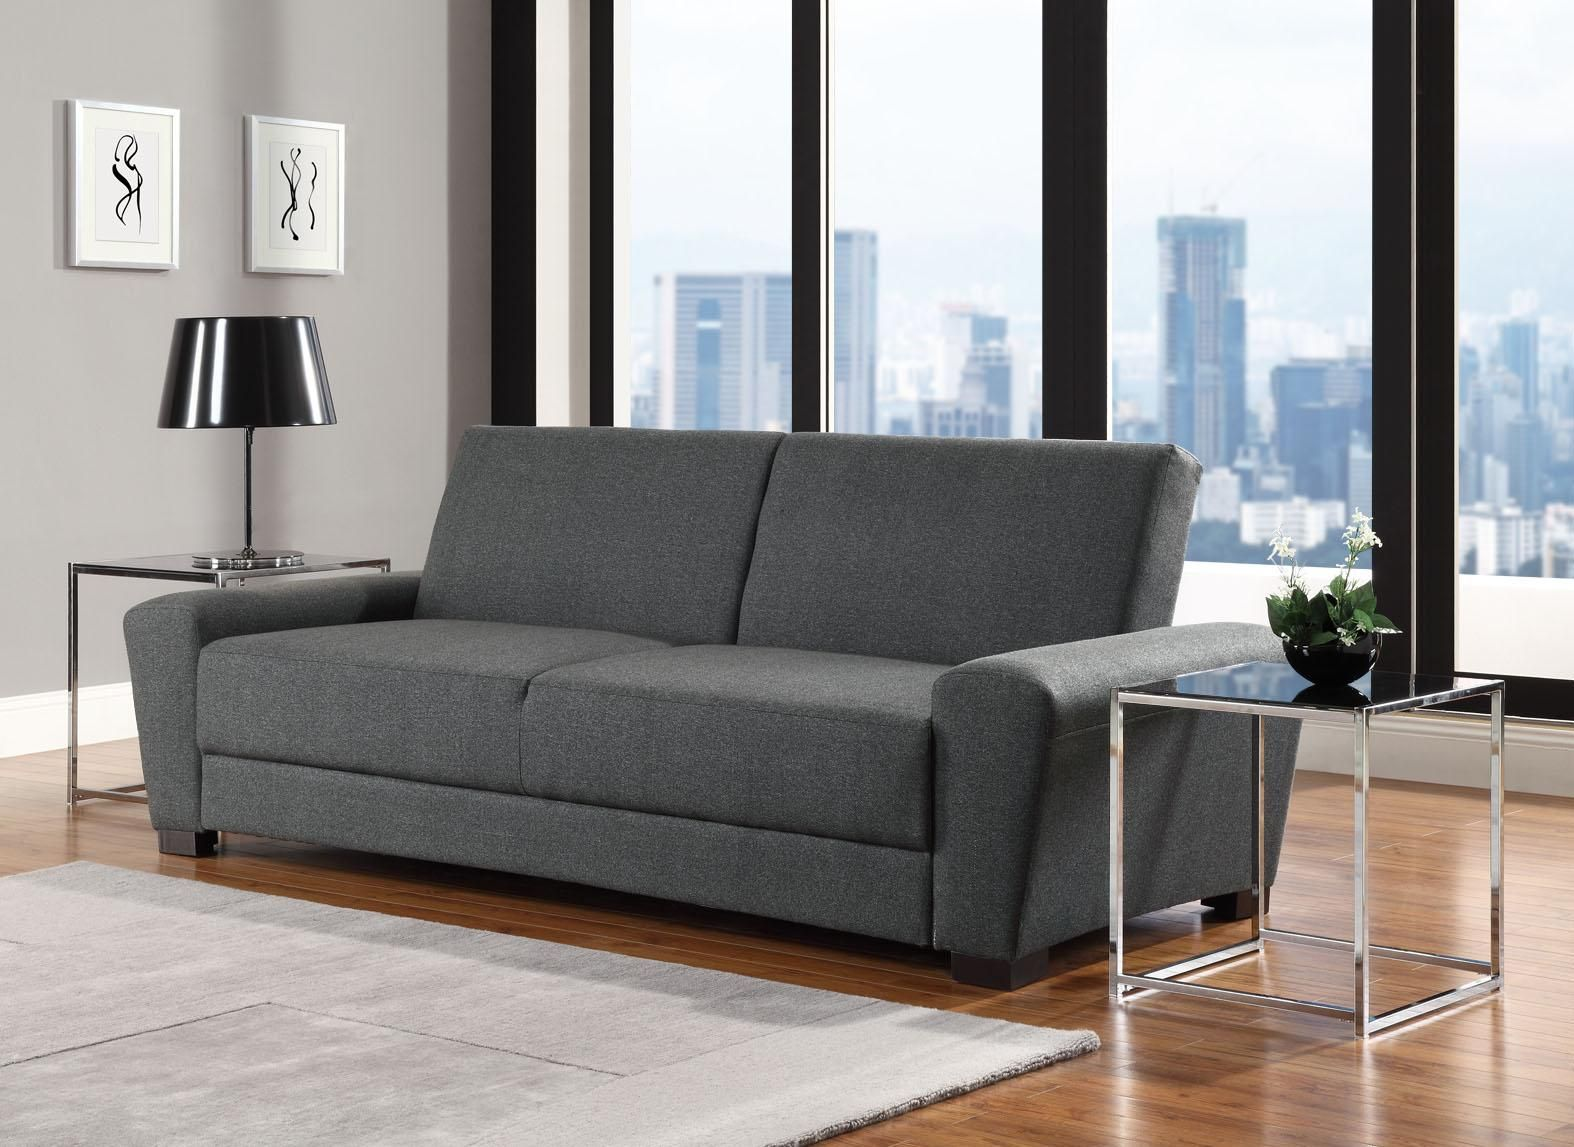 Sofas Under $300 #29 - A Futon That Looks Like A Real Couch. Under $300 From Sears.com